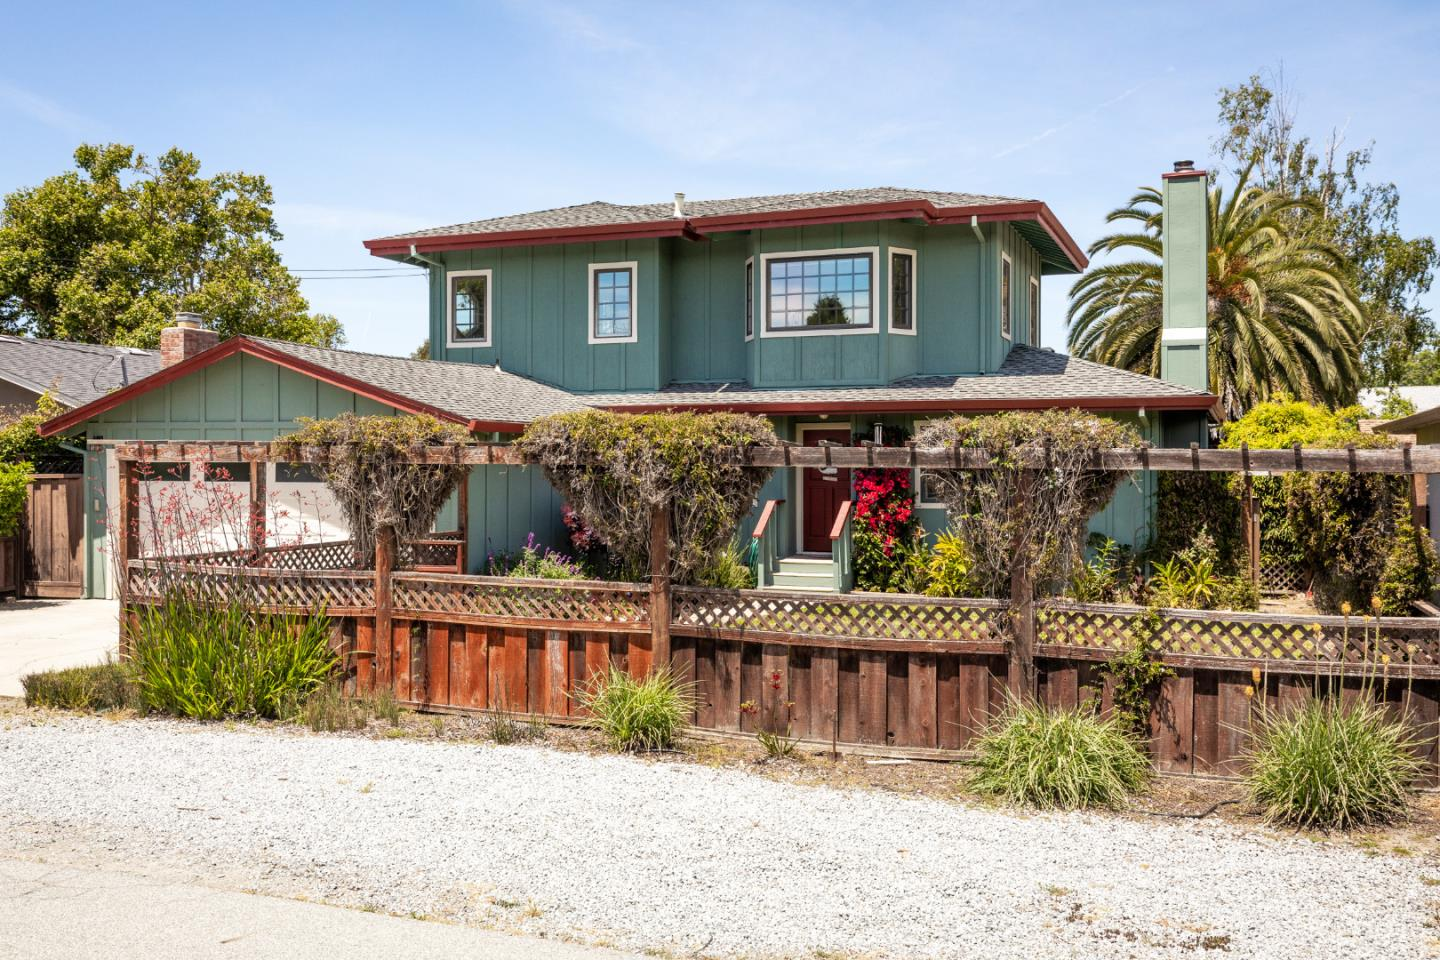 Wonderful solar home on a super quiet cul-de-sac and steps to lovely Coffee Lane Park. This Mid-County location is secret to most folks. Stroll to Trader Joe's, restaurants and coffee. Close to beaches and favorite surf spots. This updated home is light and airy with marble counters and fireplace, multiple decks and patio areas, fenced yards, raised bed gardens, flagstone walkways. The majority of living space is on the ground floor. Upstairs is a large addition that can be used as a 4th bedroom  or family room with sunny window seat and leads to a big covered deck with sunset views. Solar System is owned and goes with the house - not leased.